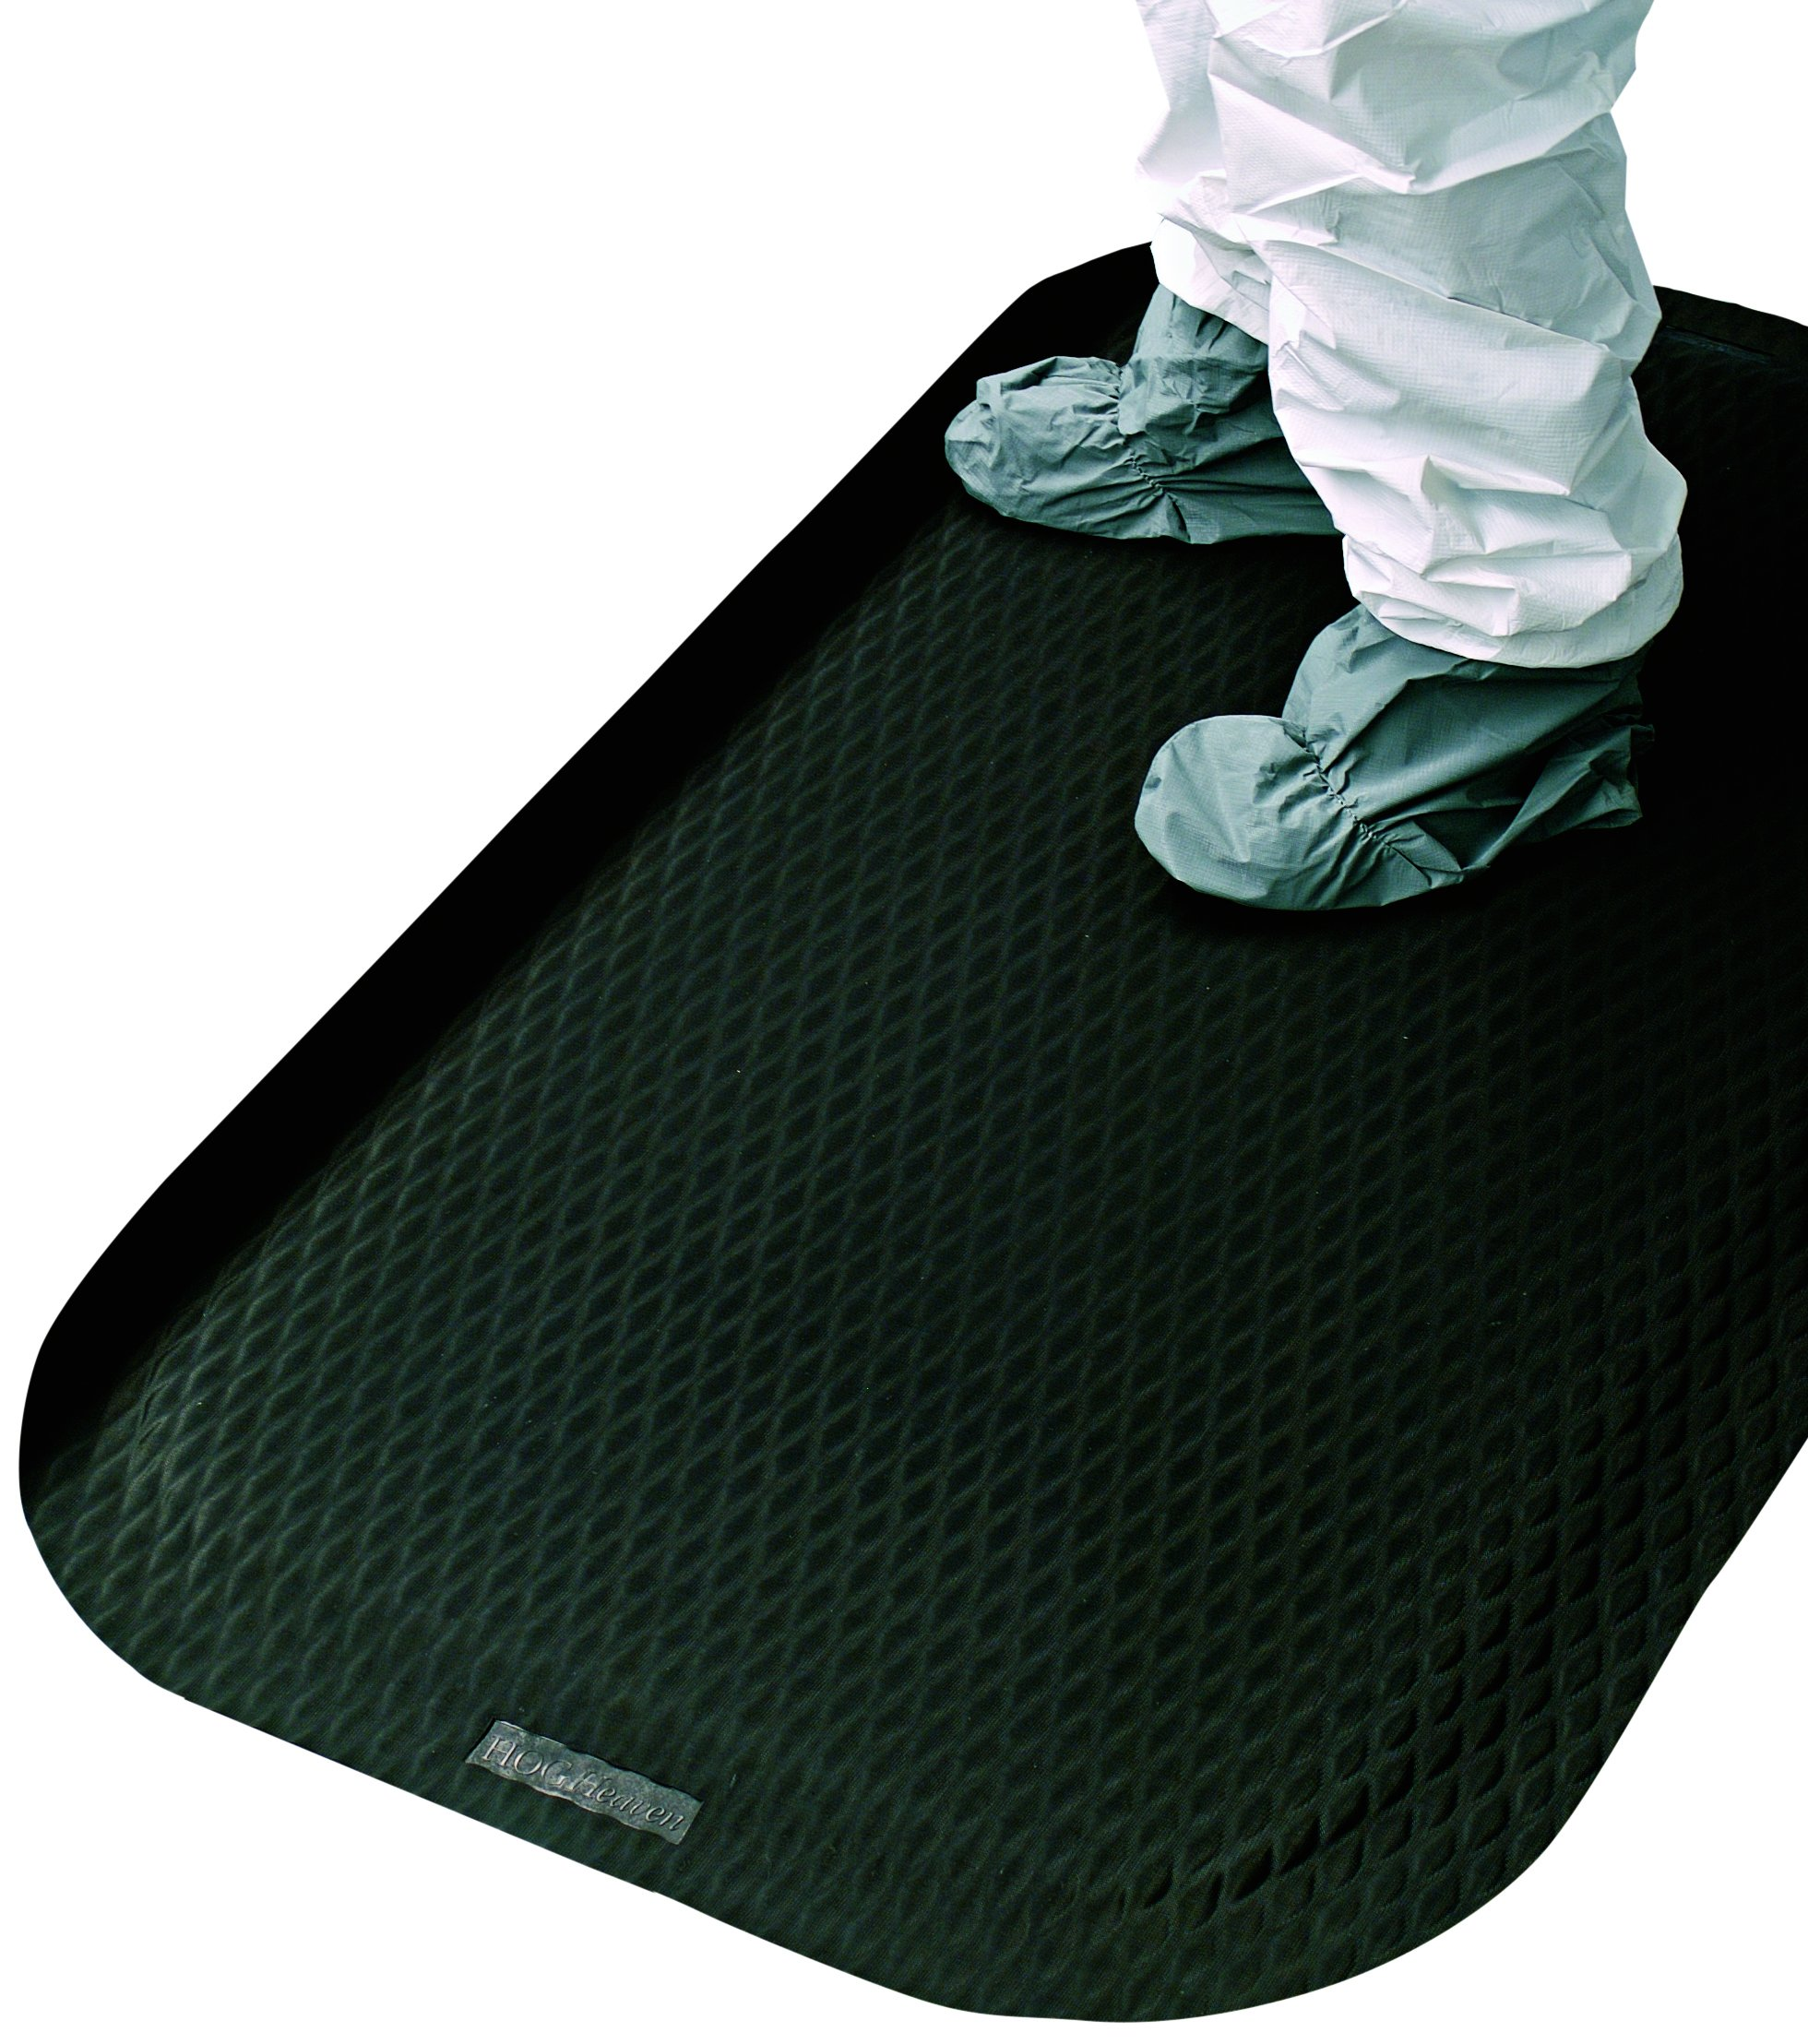 Hog Heaven Ergonomic Anti-Fatigue Mat 7/8'' 3' Length x 2' Width x Black by M+A Matting by M+A Matting (Image #2)